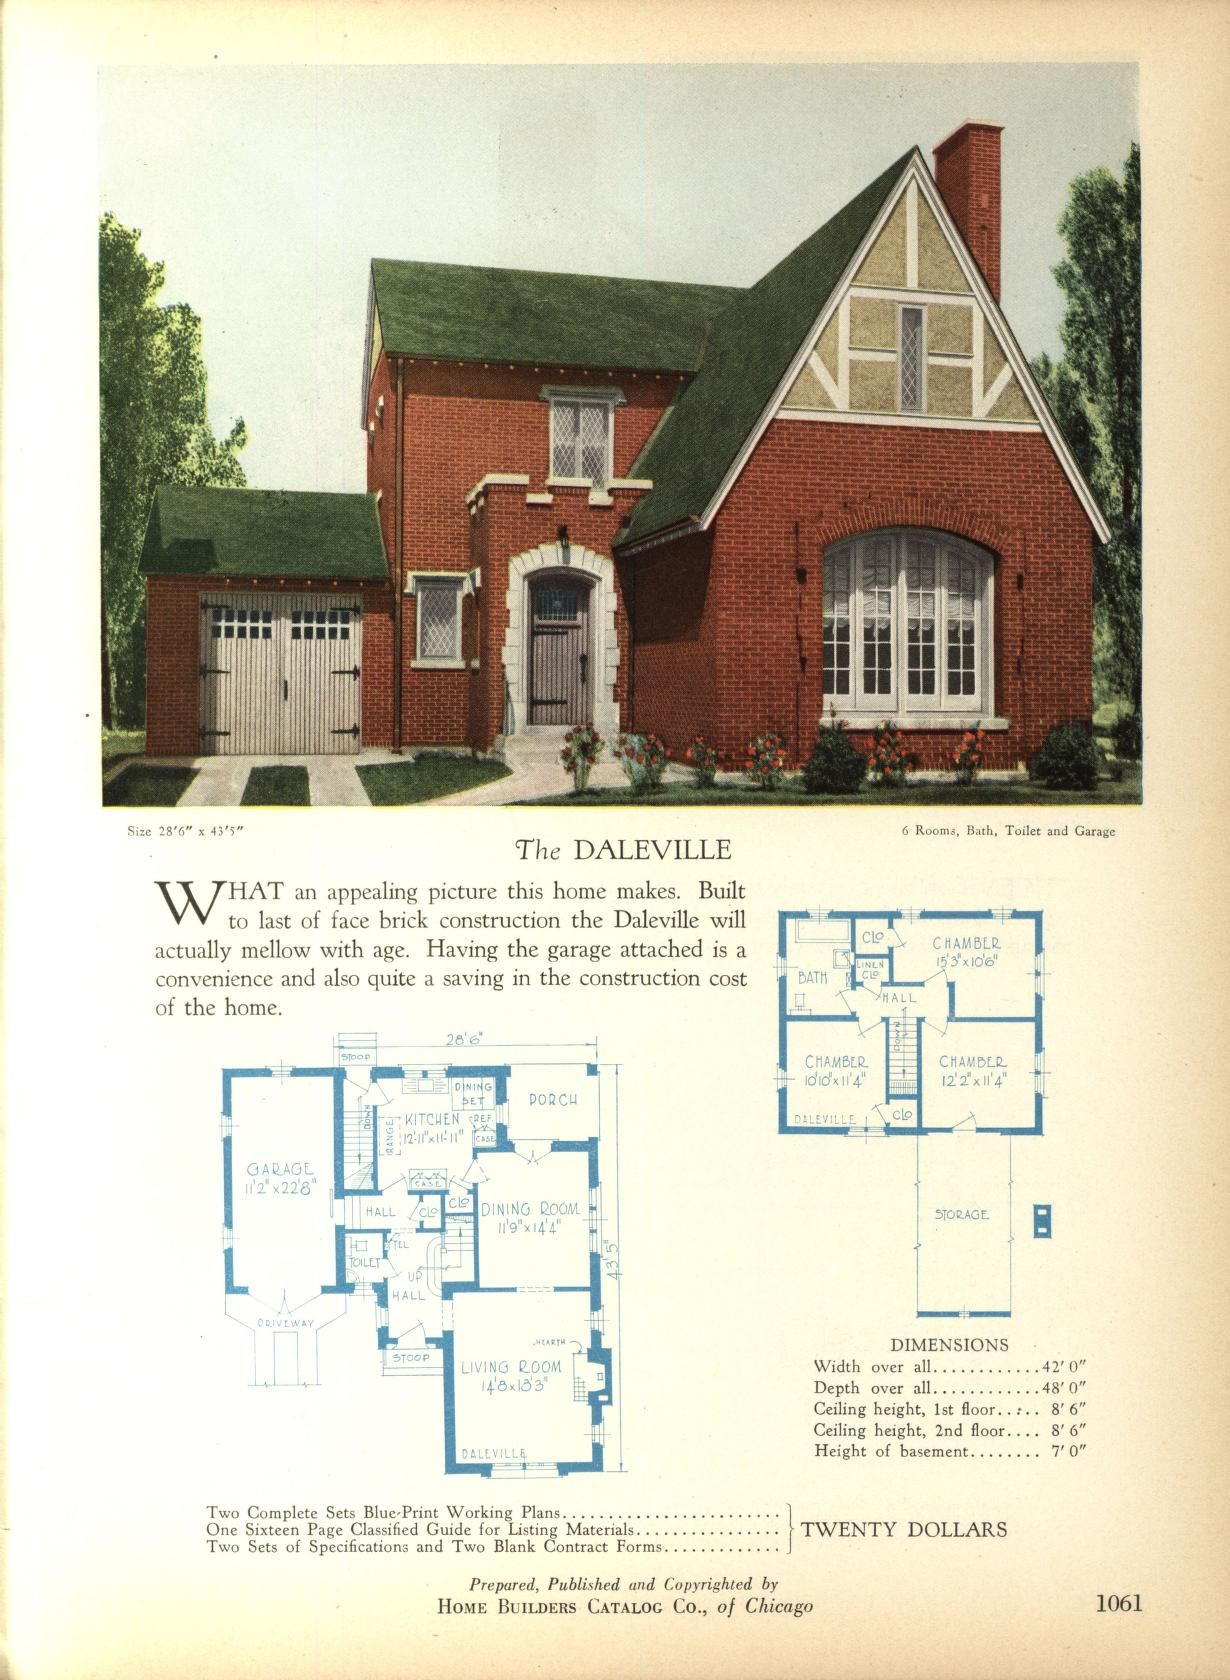 The DALEVILLE   Home Builders Catalog: Plans Of All Types Of Small Homes By  Home